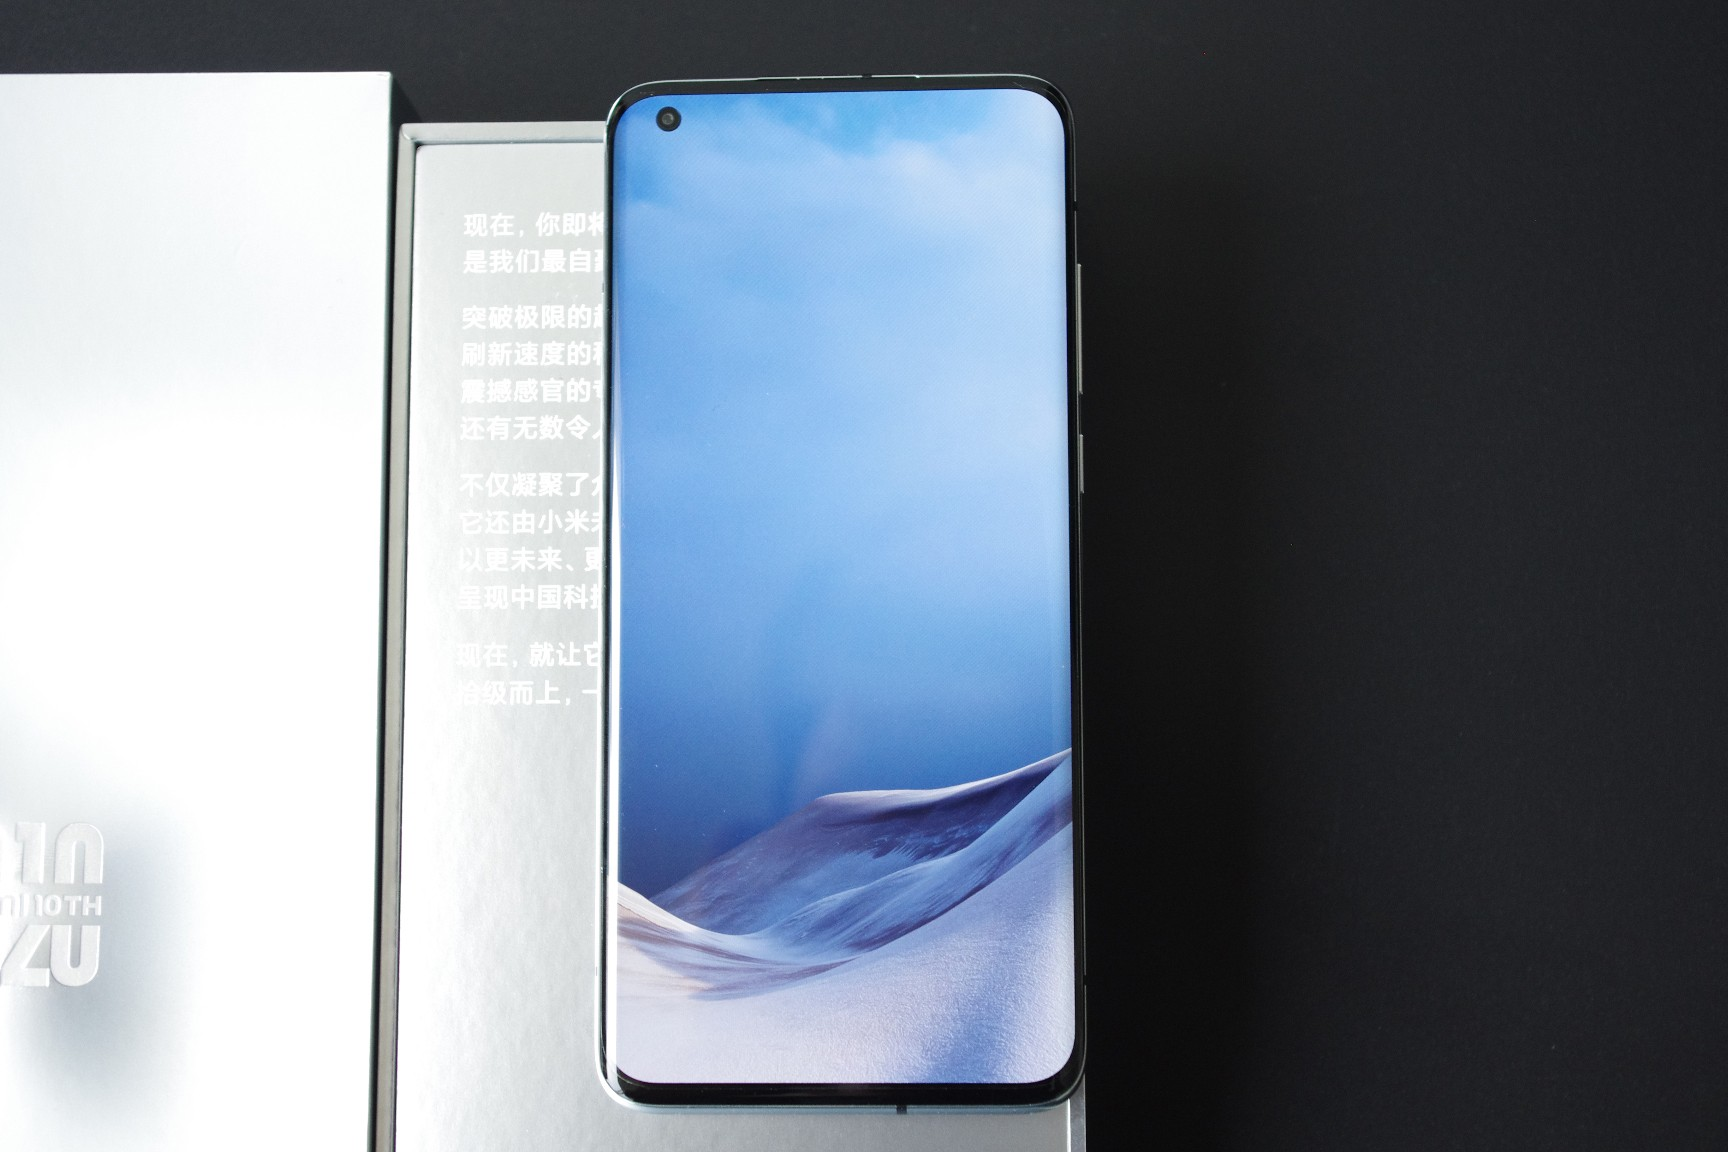 Front of the phone